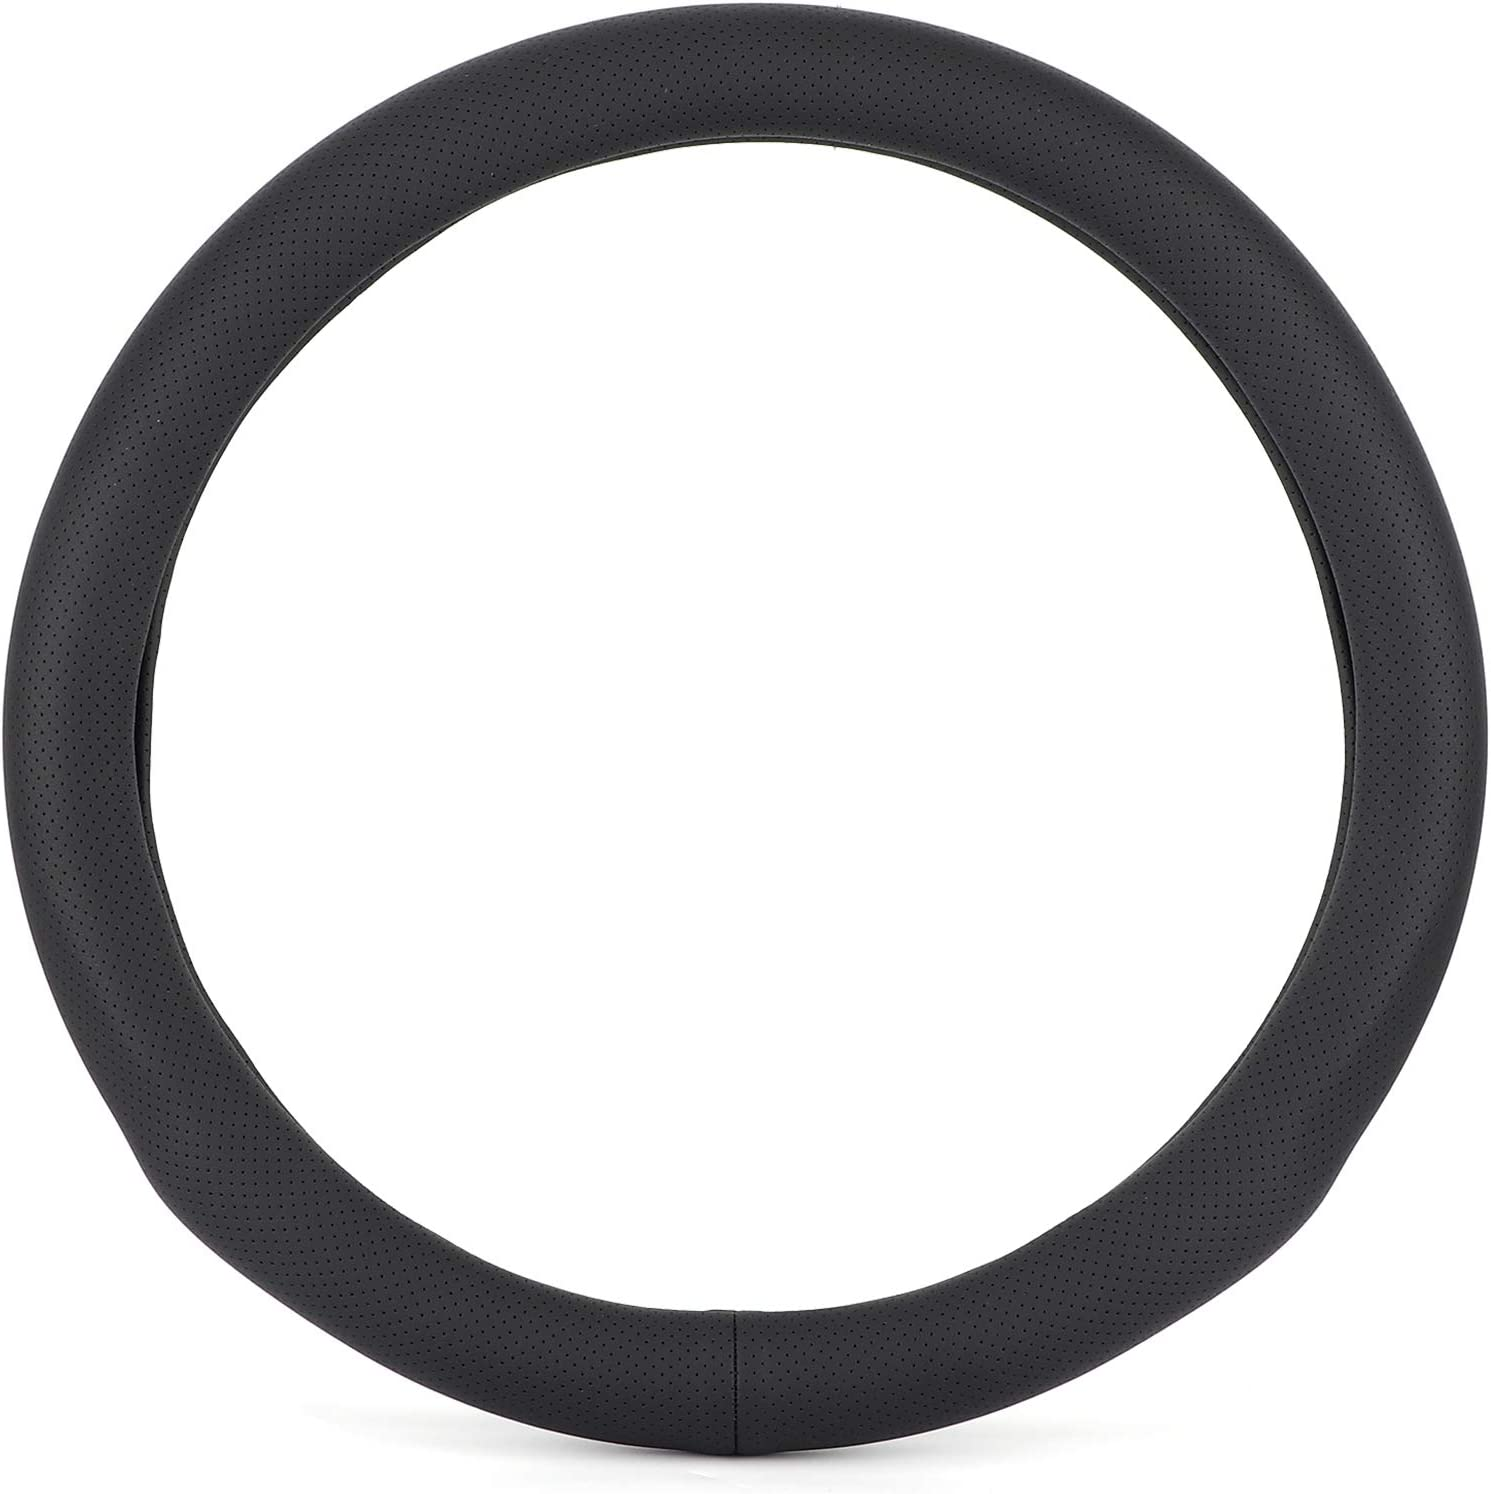 Car Regular dealer Steering Max 47% OFF Wheel Cover 15 C Universal Artificial Leather Inch